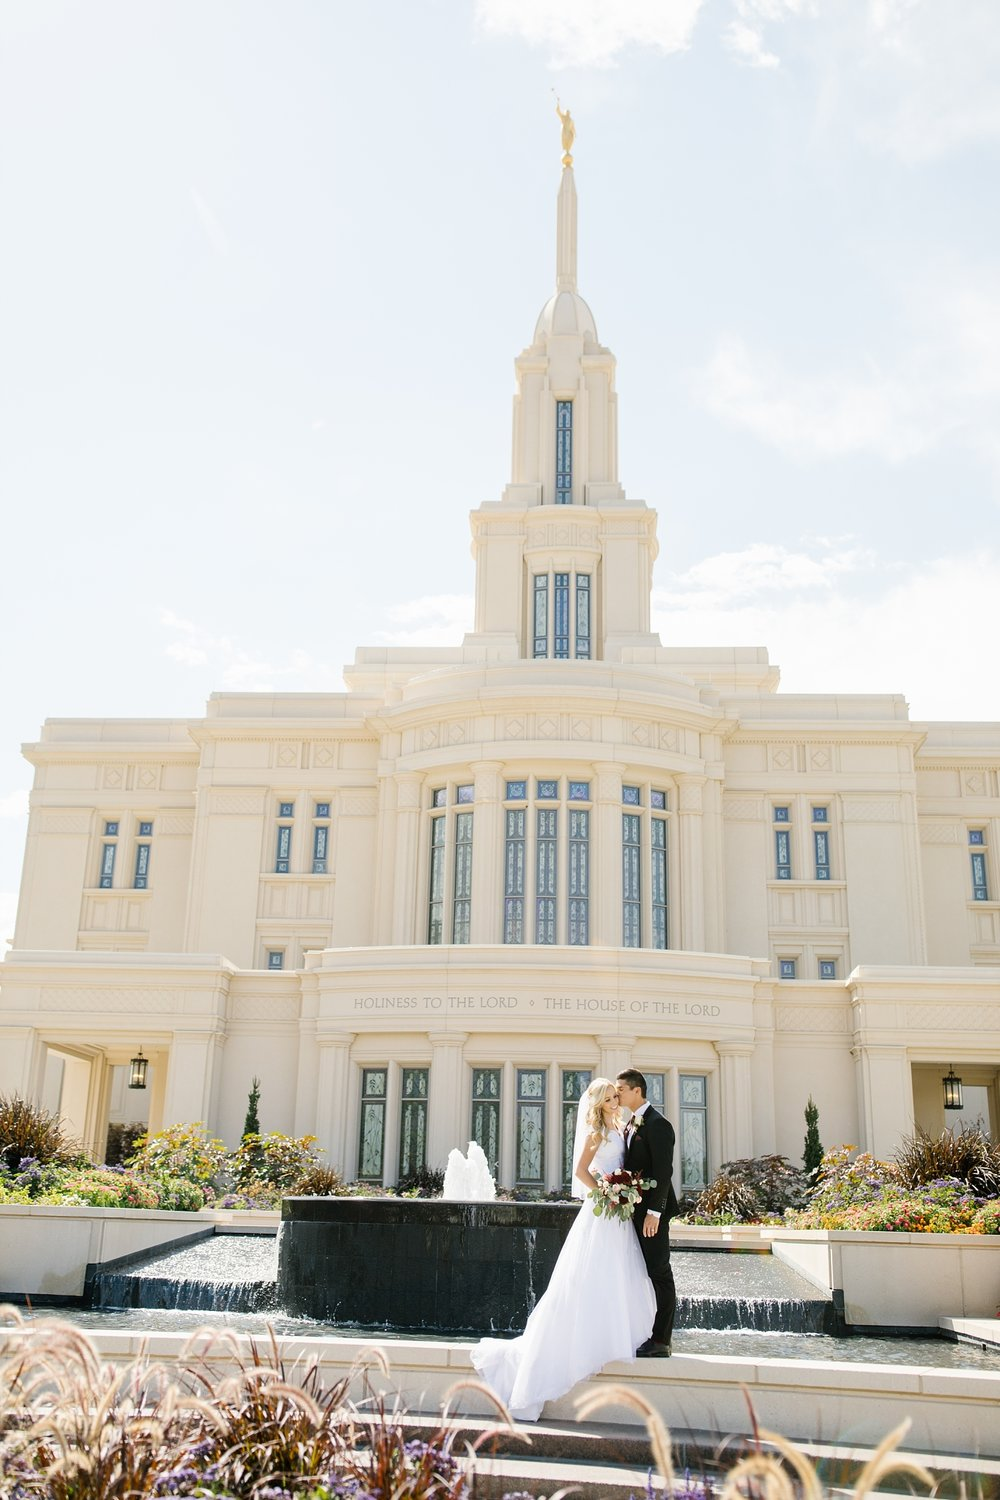 HannahChaseWedding-195_Lizzie-B-Imagery-Utah-Wedding-Photographer-Bridal-Photography-Payson-Utah-Temple-Clarion-Gardens-Catering-and-Events-Center.jpg